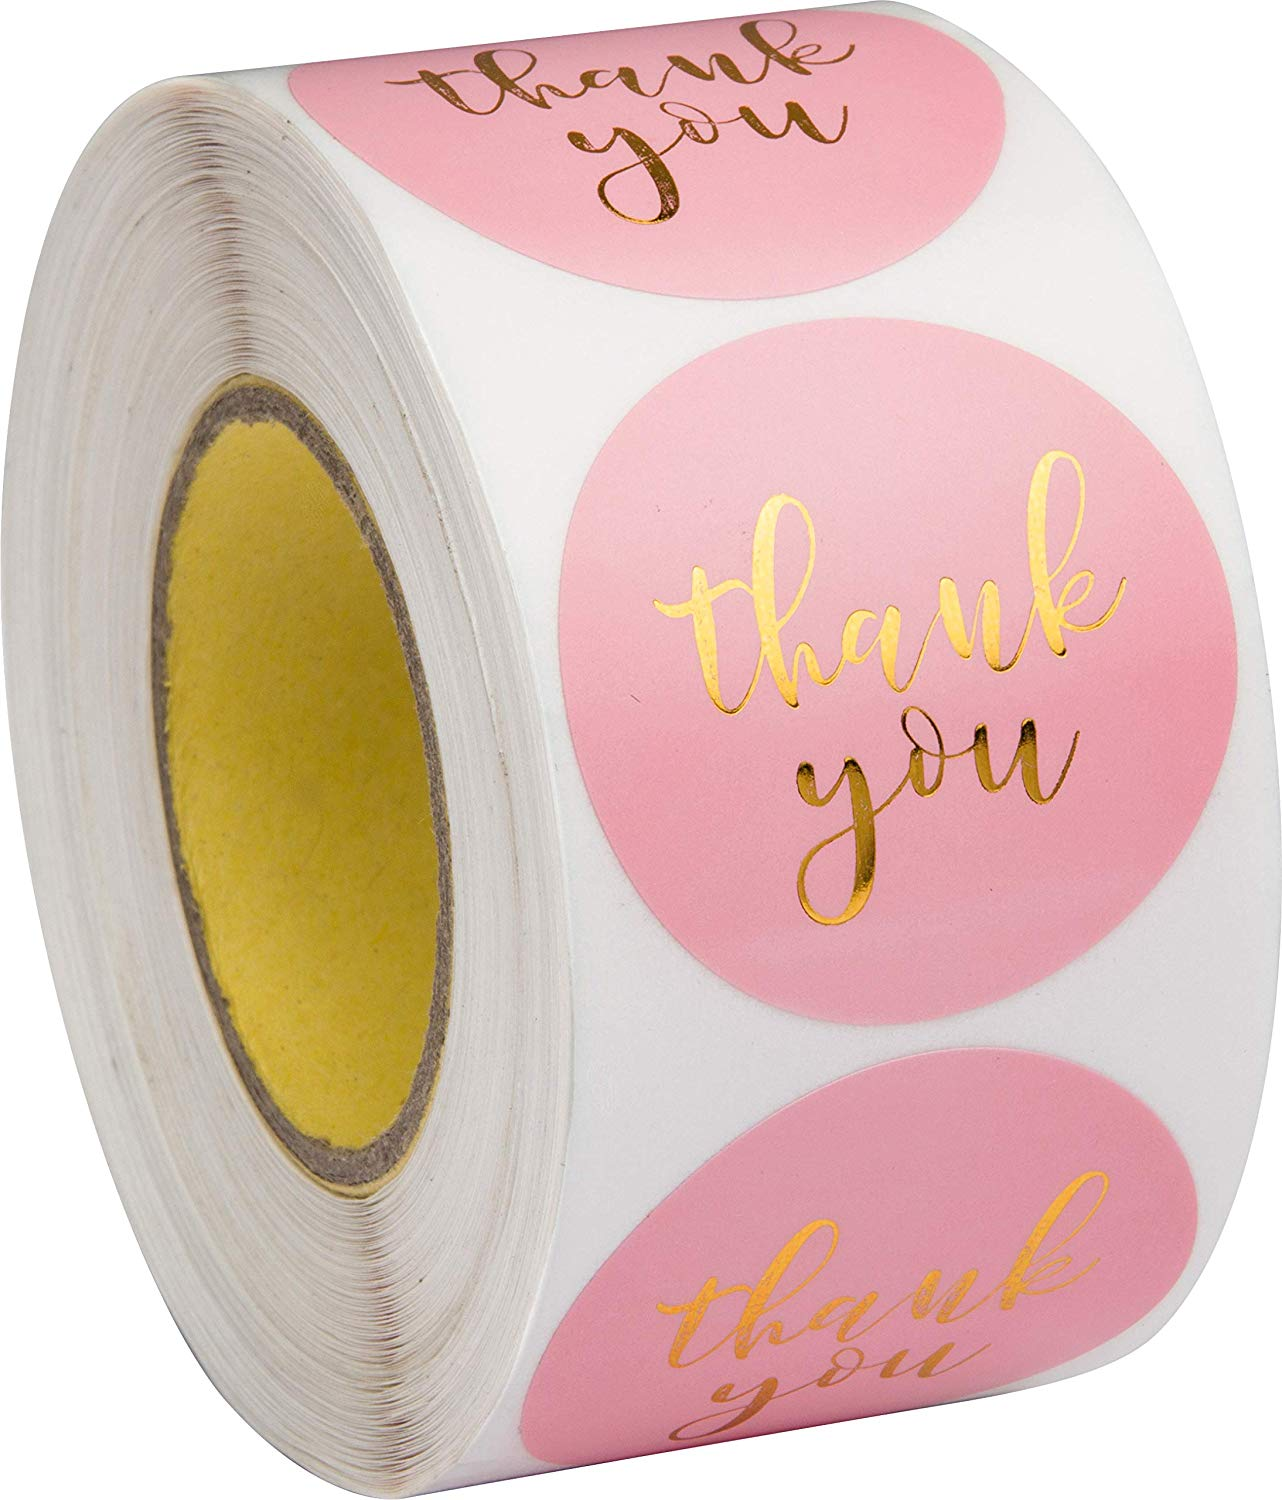 Thank You Stickers With Gold Foil Pink Stickers For Company Giveaway Birthday Party Favors Mailing Supplies For Boutique Bags